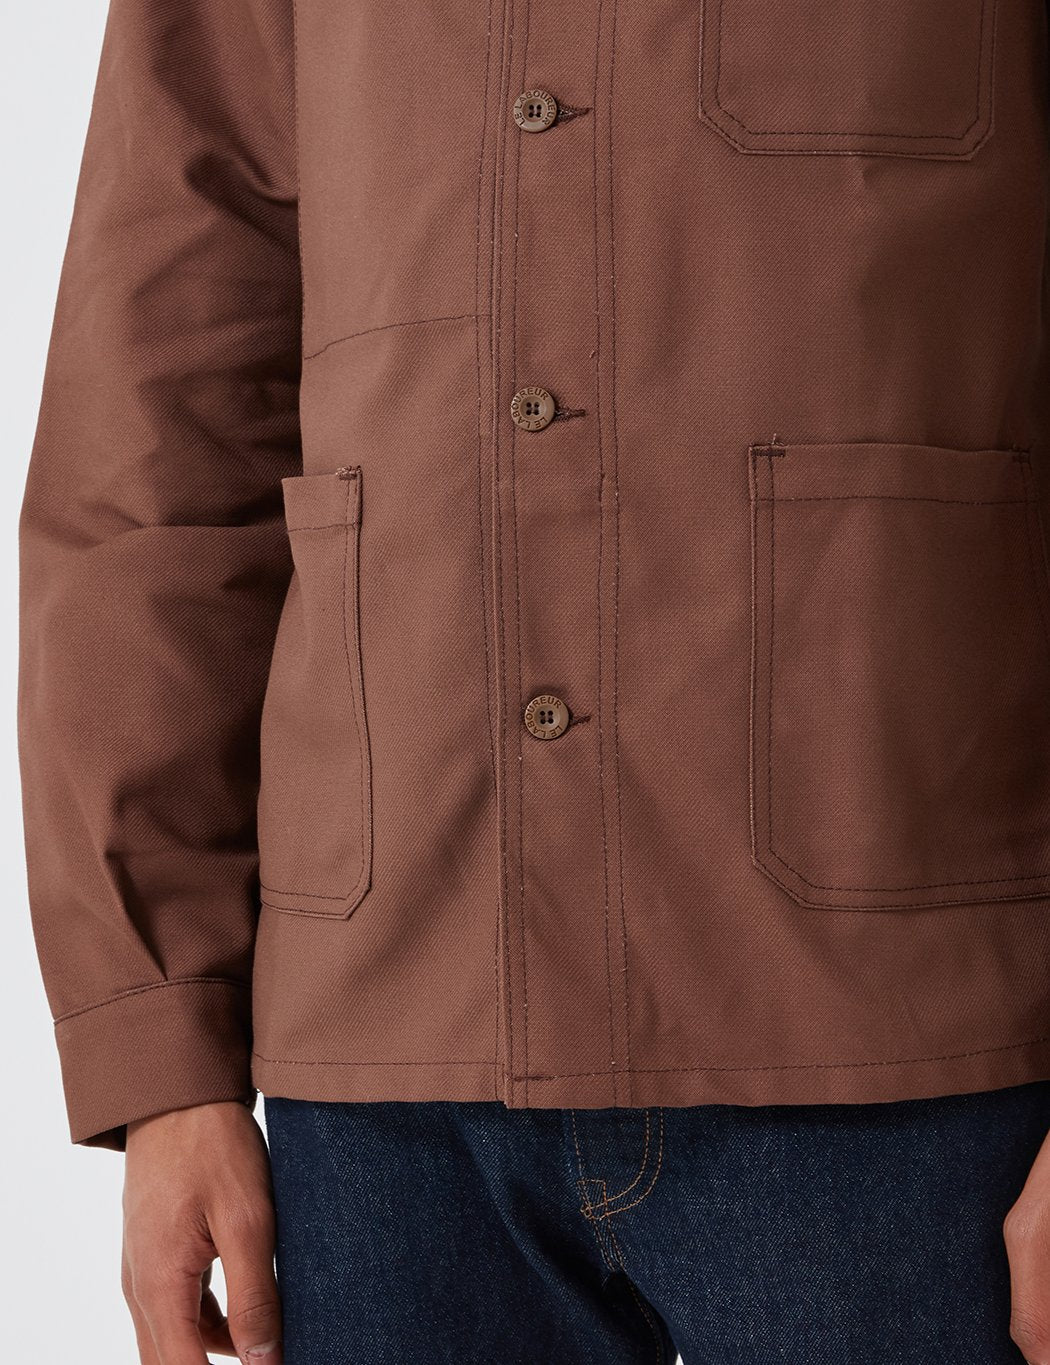 Le Laboureur Cotton Arbeitsjacke - Brown